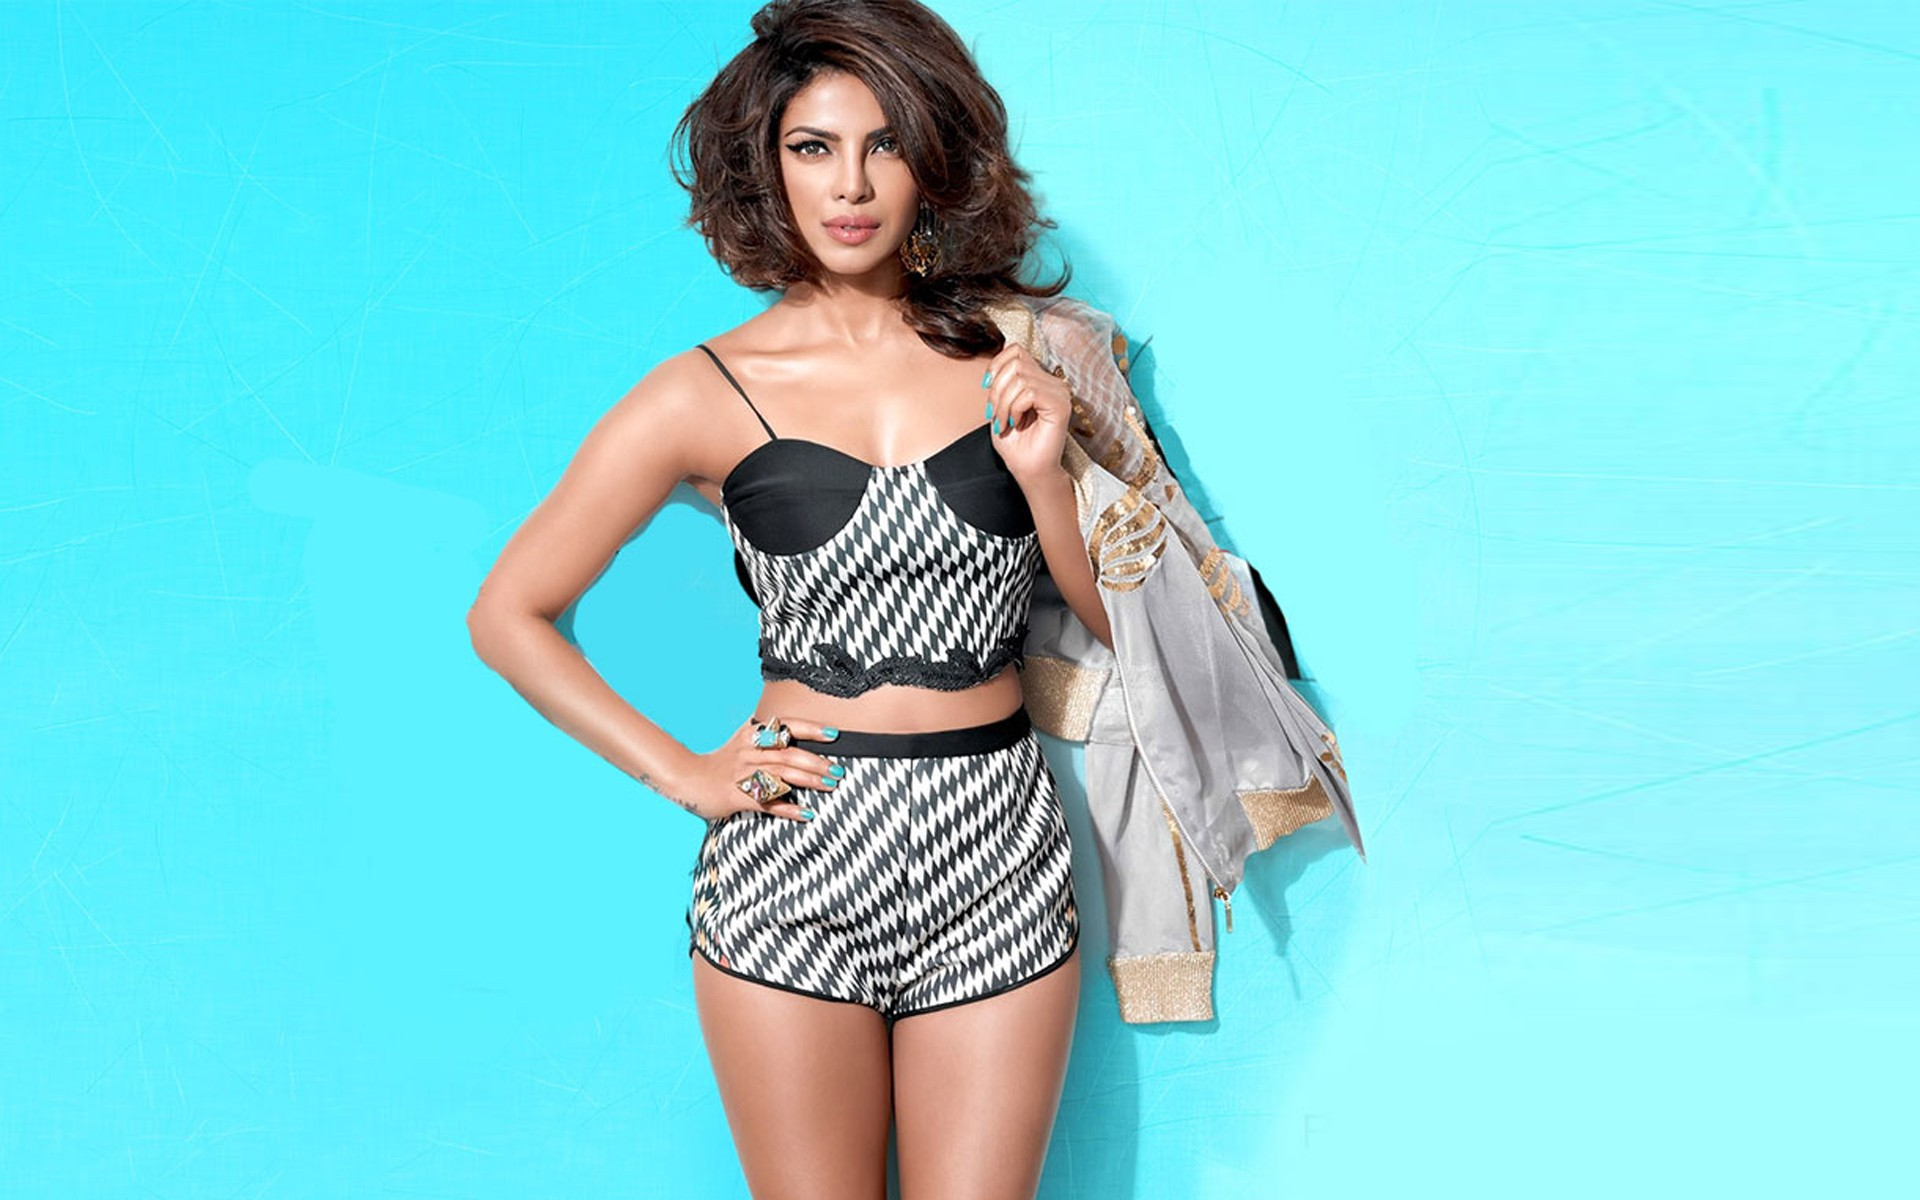 Priyanka Chopra hottest photos pics images